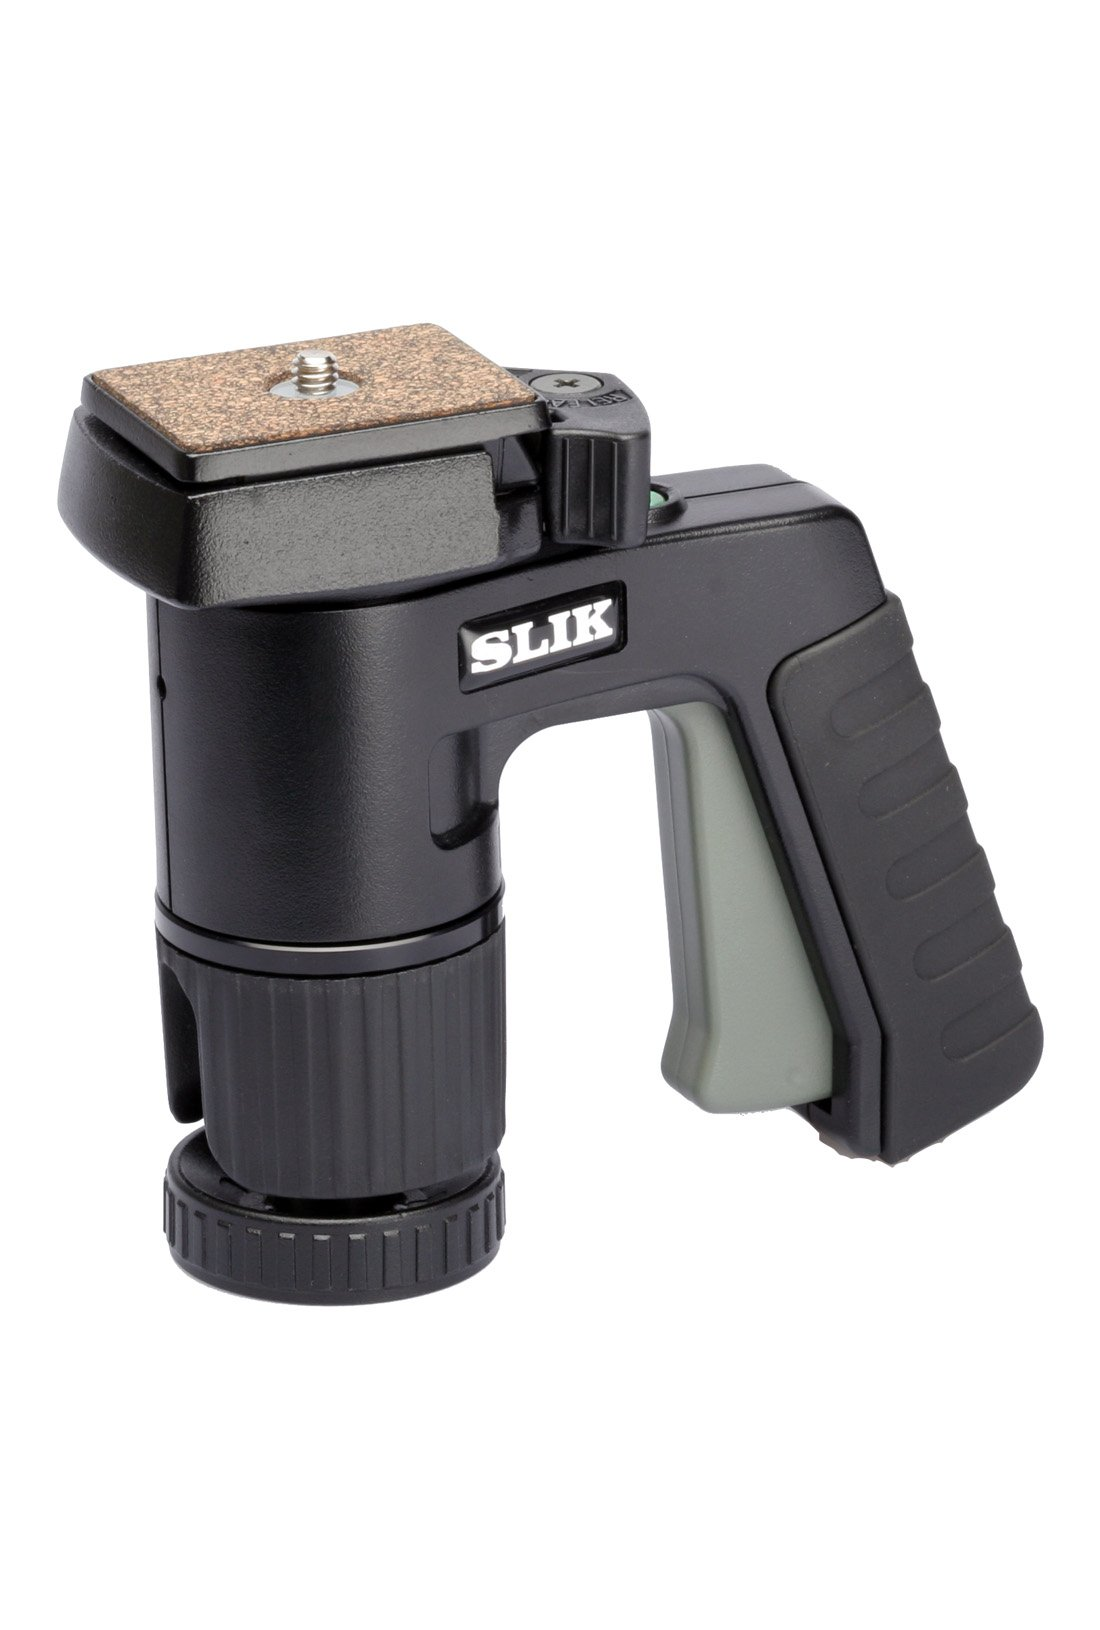 Slik Trigger Release Ball Head for Digital Cameras by Slik